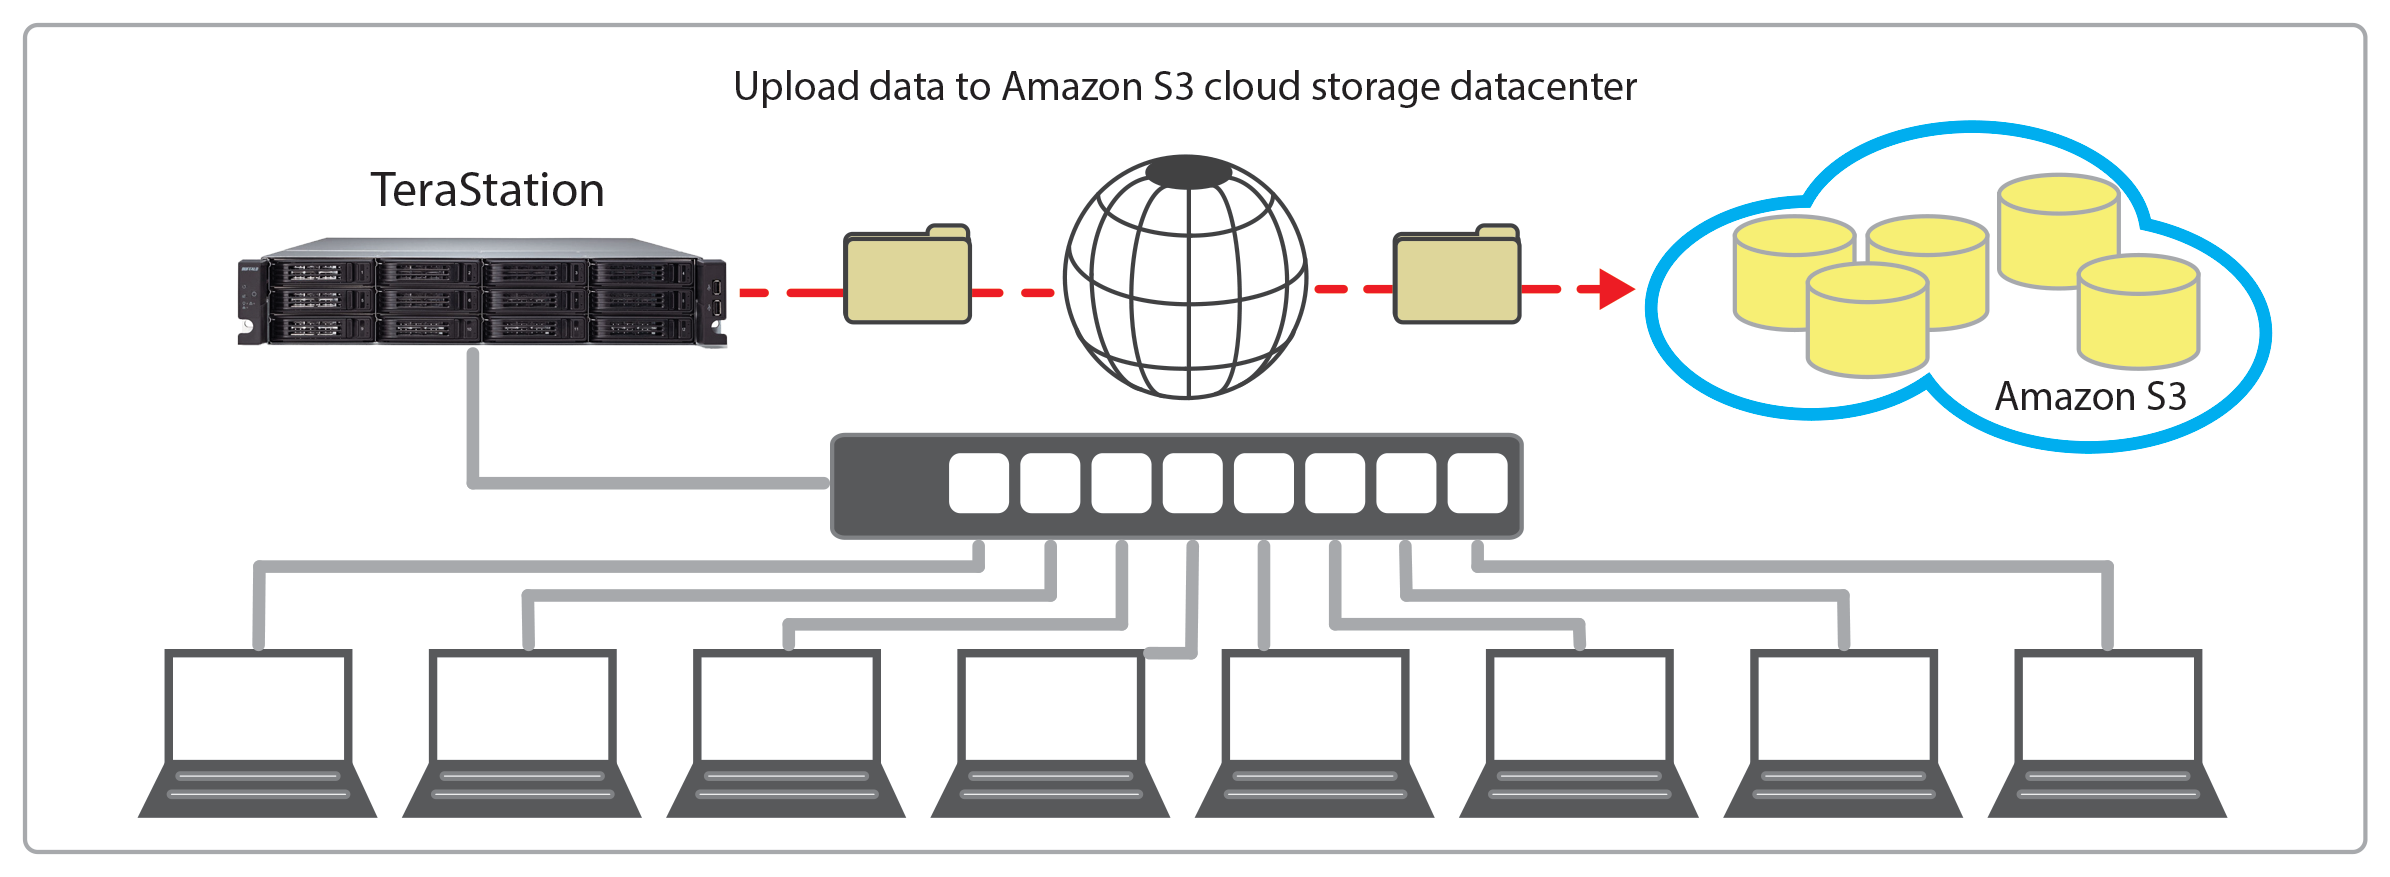 terastation 7000 cloud storage backup